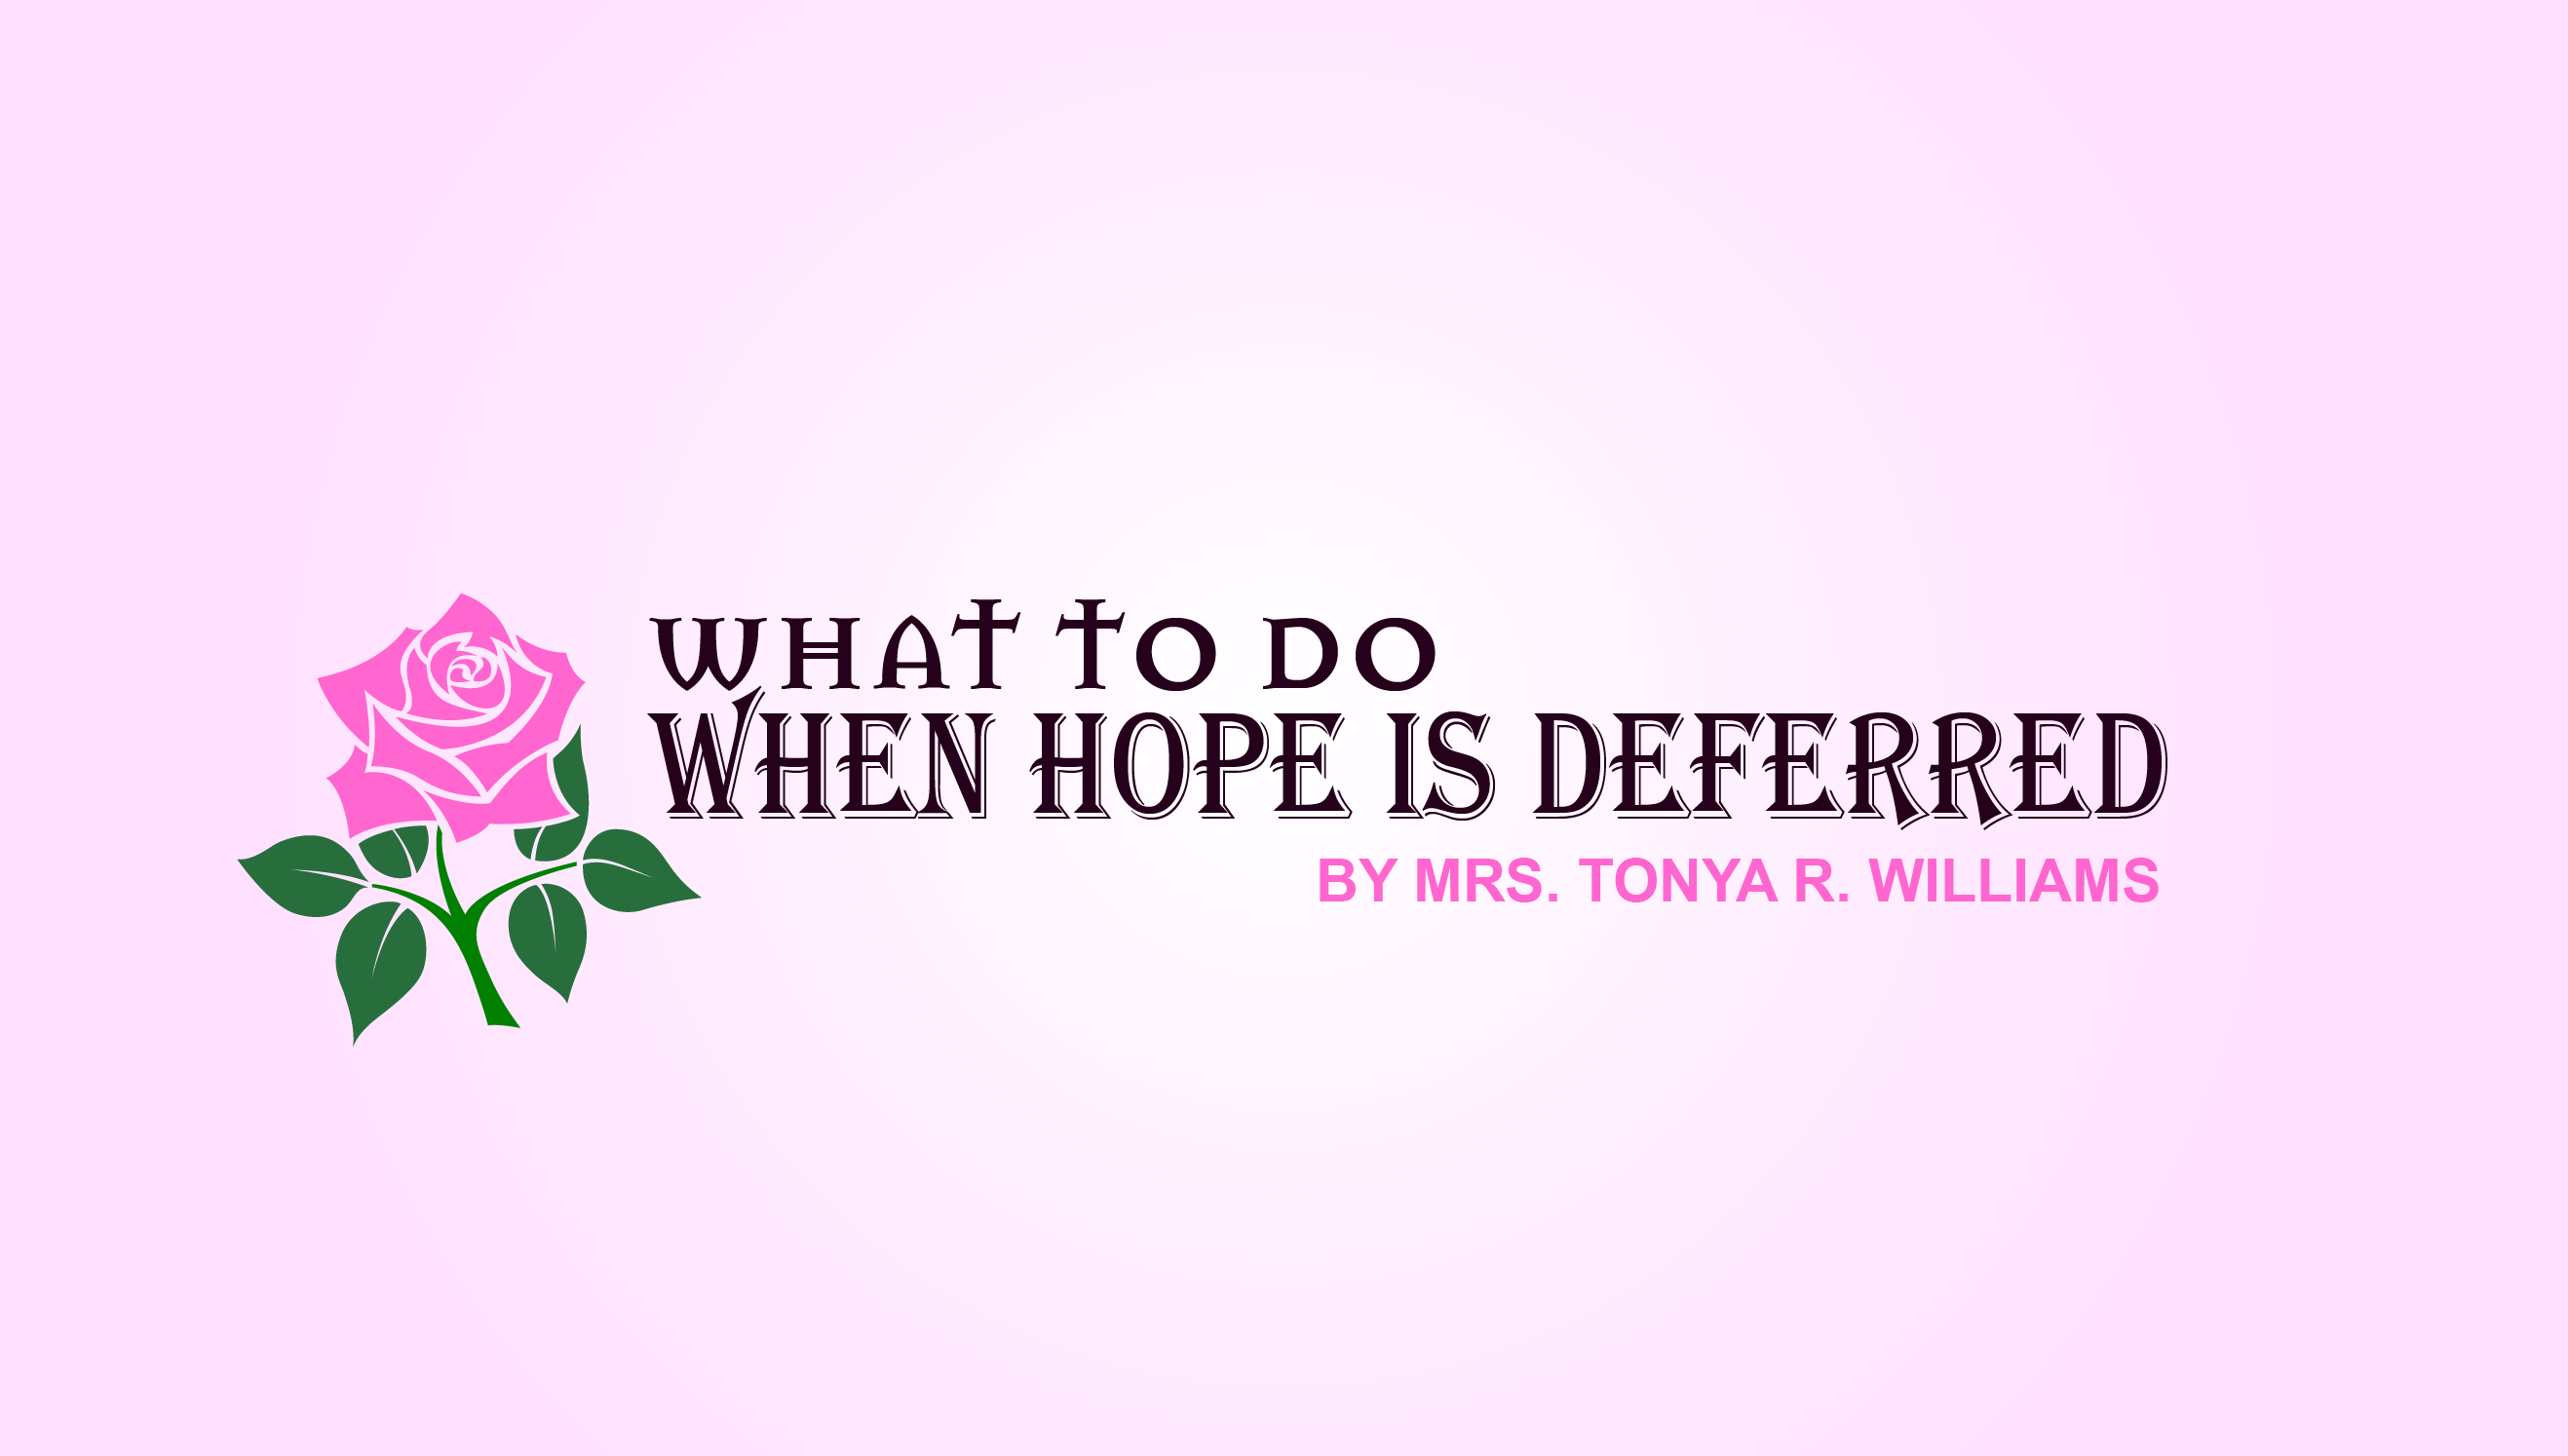 Tonya R. Williams, Author, Life Coach and Speaker